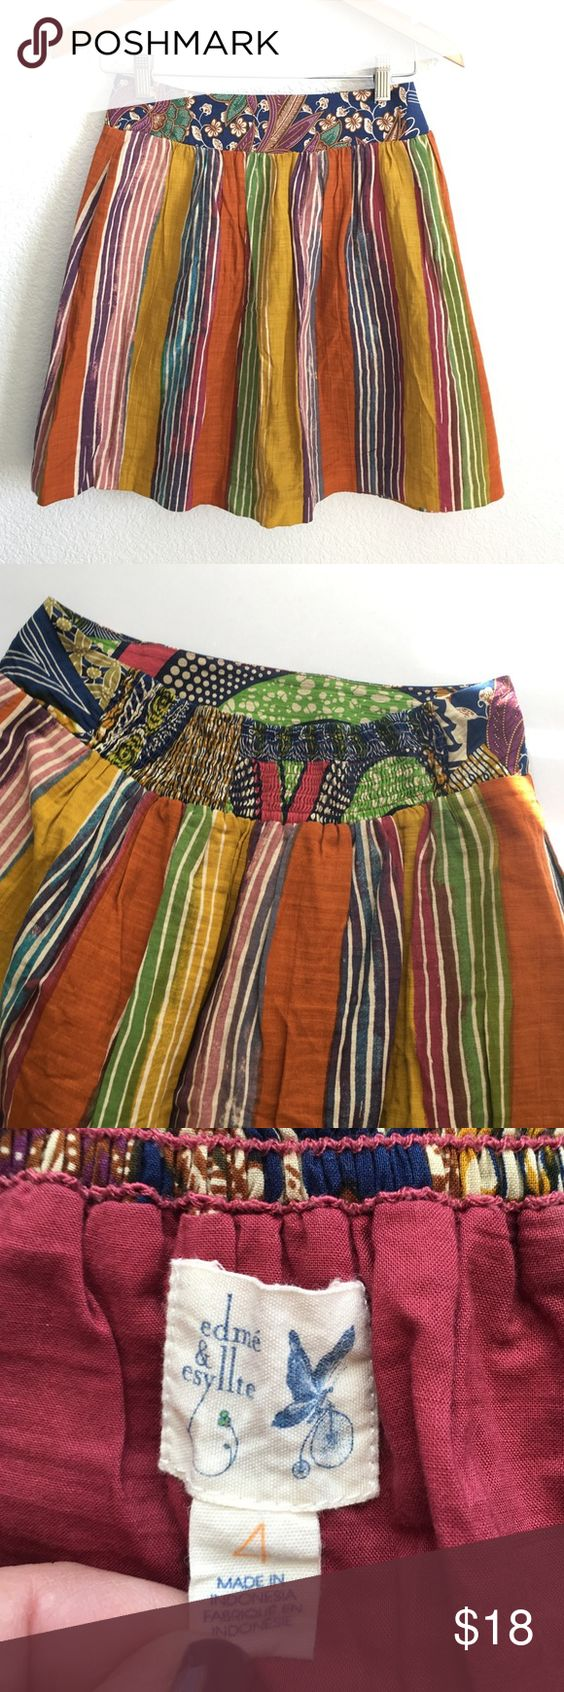 """Anthropologie Fall Stripped Skirt Ready for any season this 100% cotton skirt is double layered with great edge trim in bottom layer. Elastic back makes it so comfortable and easy to wear.  14-18"""" waist, 18"""" length. In excellent used condition, worn once. I think it runs a bit big. Edmé & Esyllte is the brand Anthropologie Skirts"""